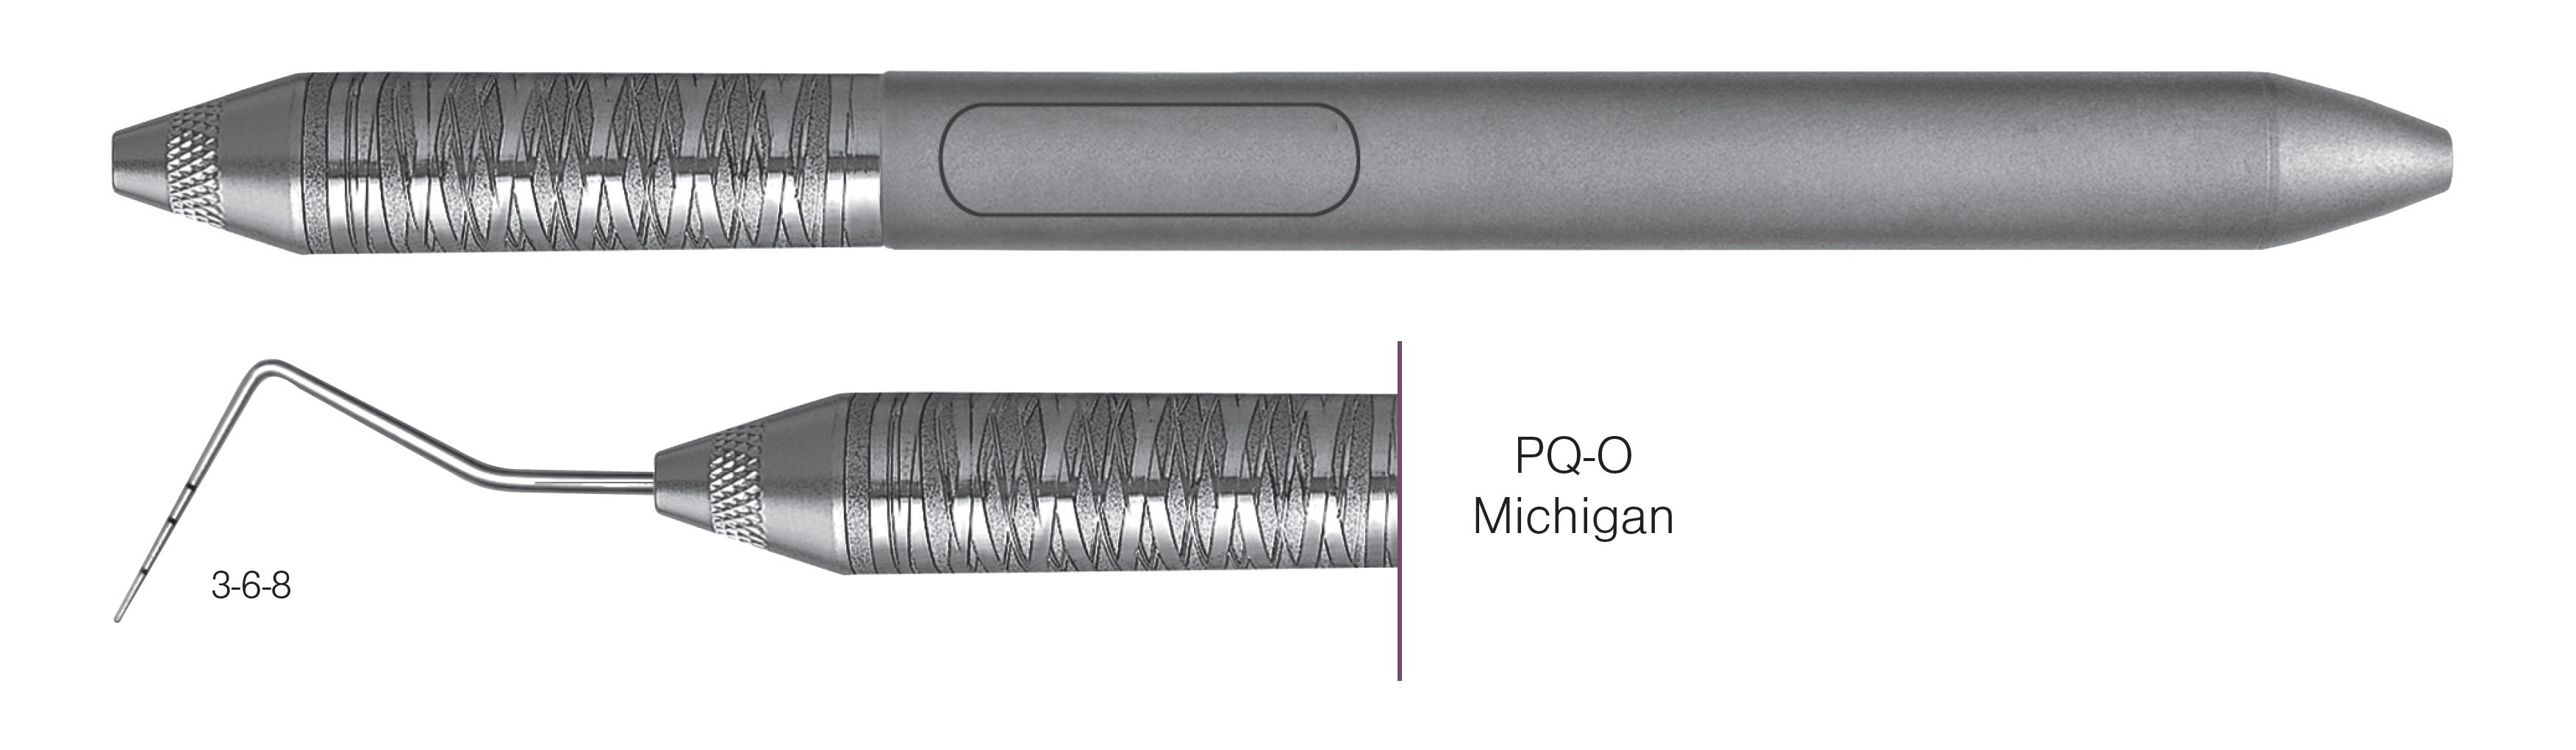 HF-PQO6-6, COLOR-CODED PROBES PQ-O Michigan, Black markings, 3-6-8 mm, Handle Satin Steel, Aluminum Titanium Nitride (AlTiN) coating, Single End